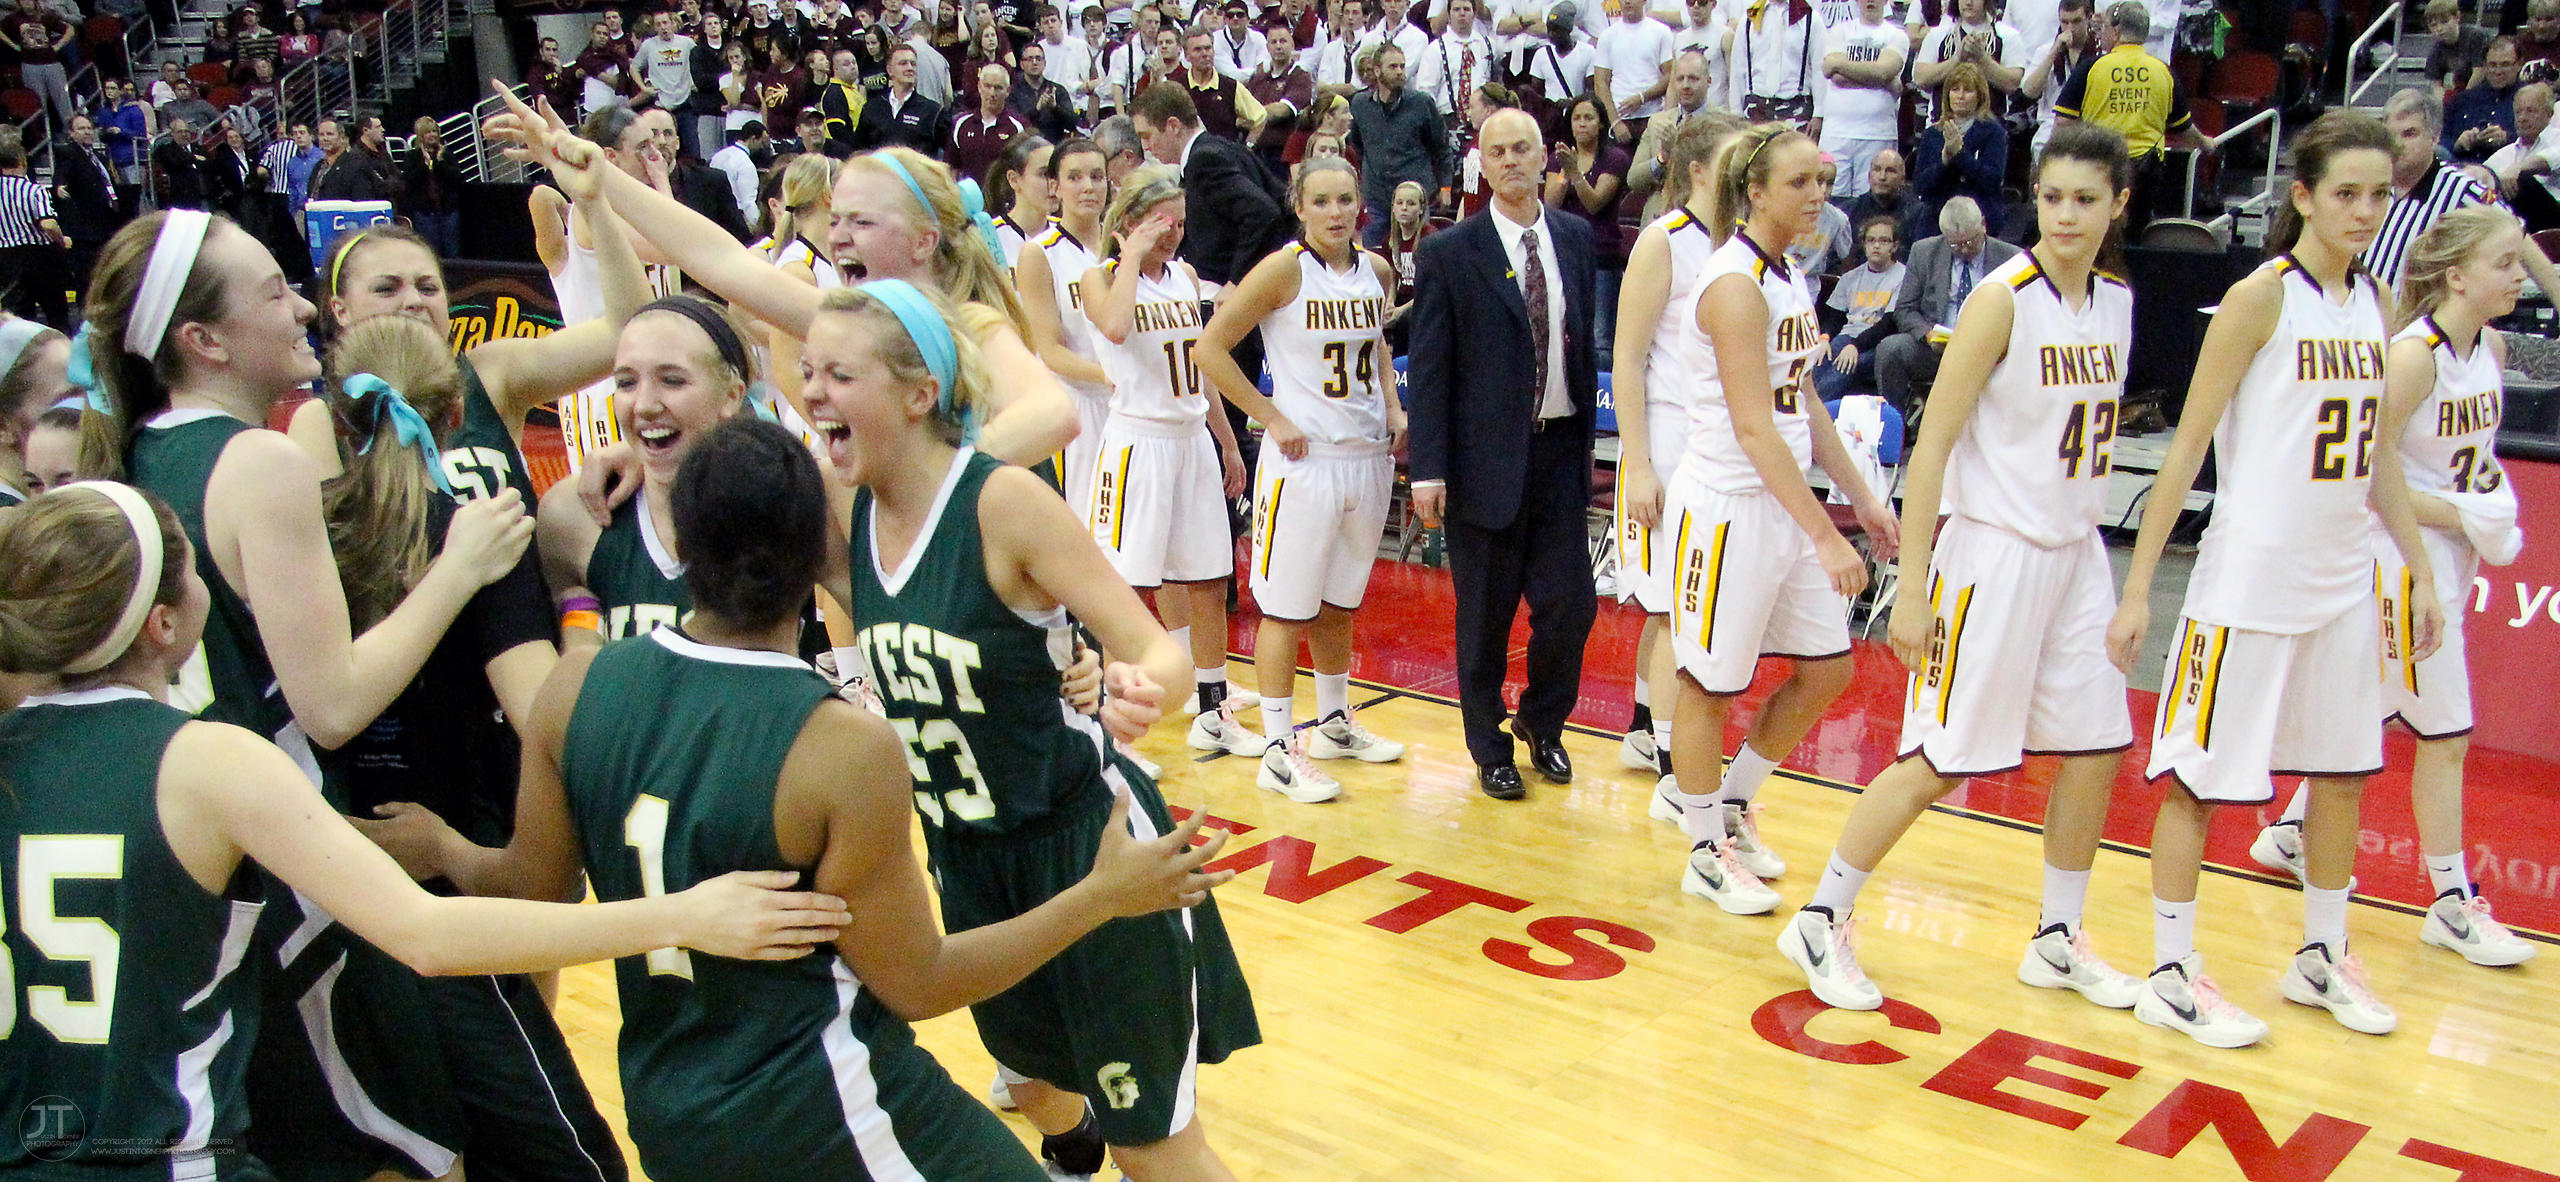 Girls Basketball 4A State Championship Game Iowa City West vs Ankeny 3/3/12